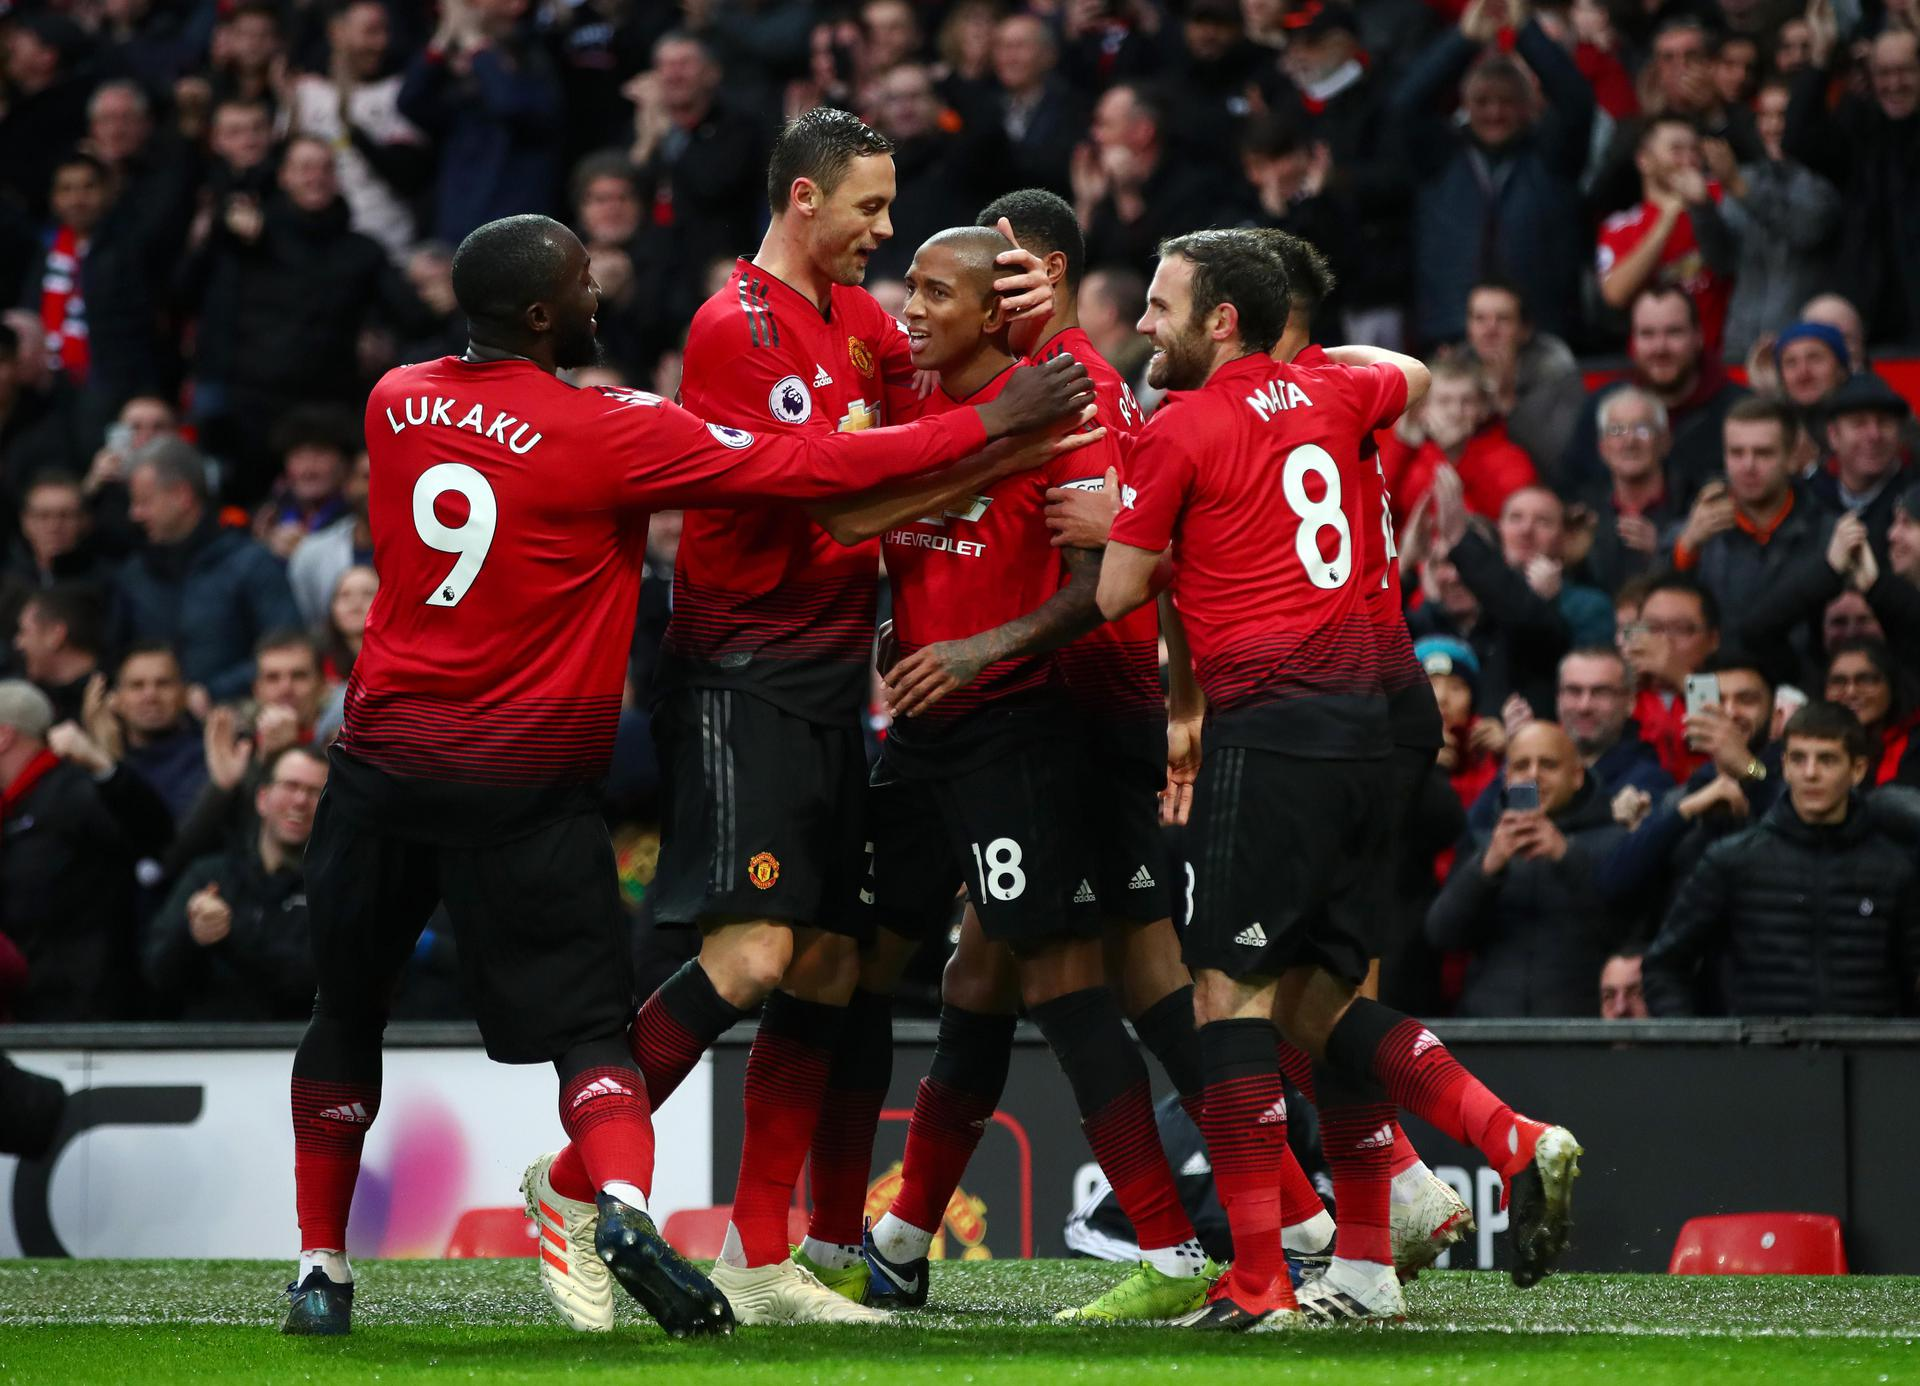 United players celebrate a goal at Old Trafford.